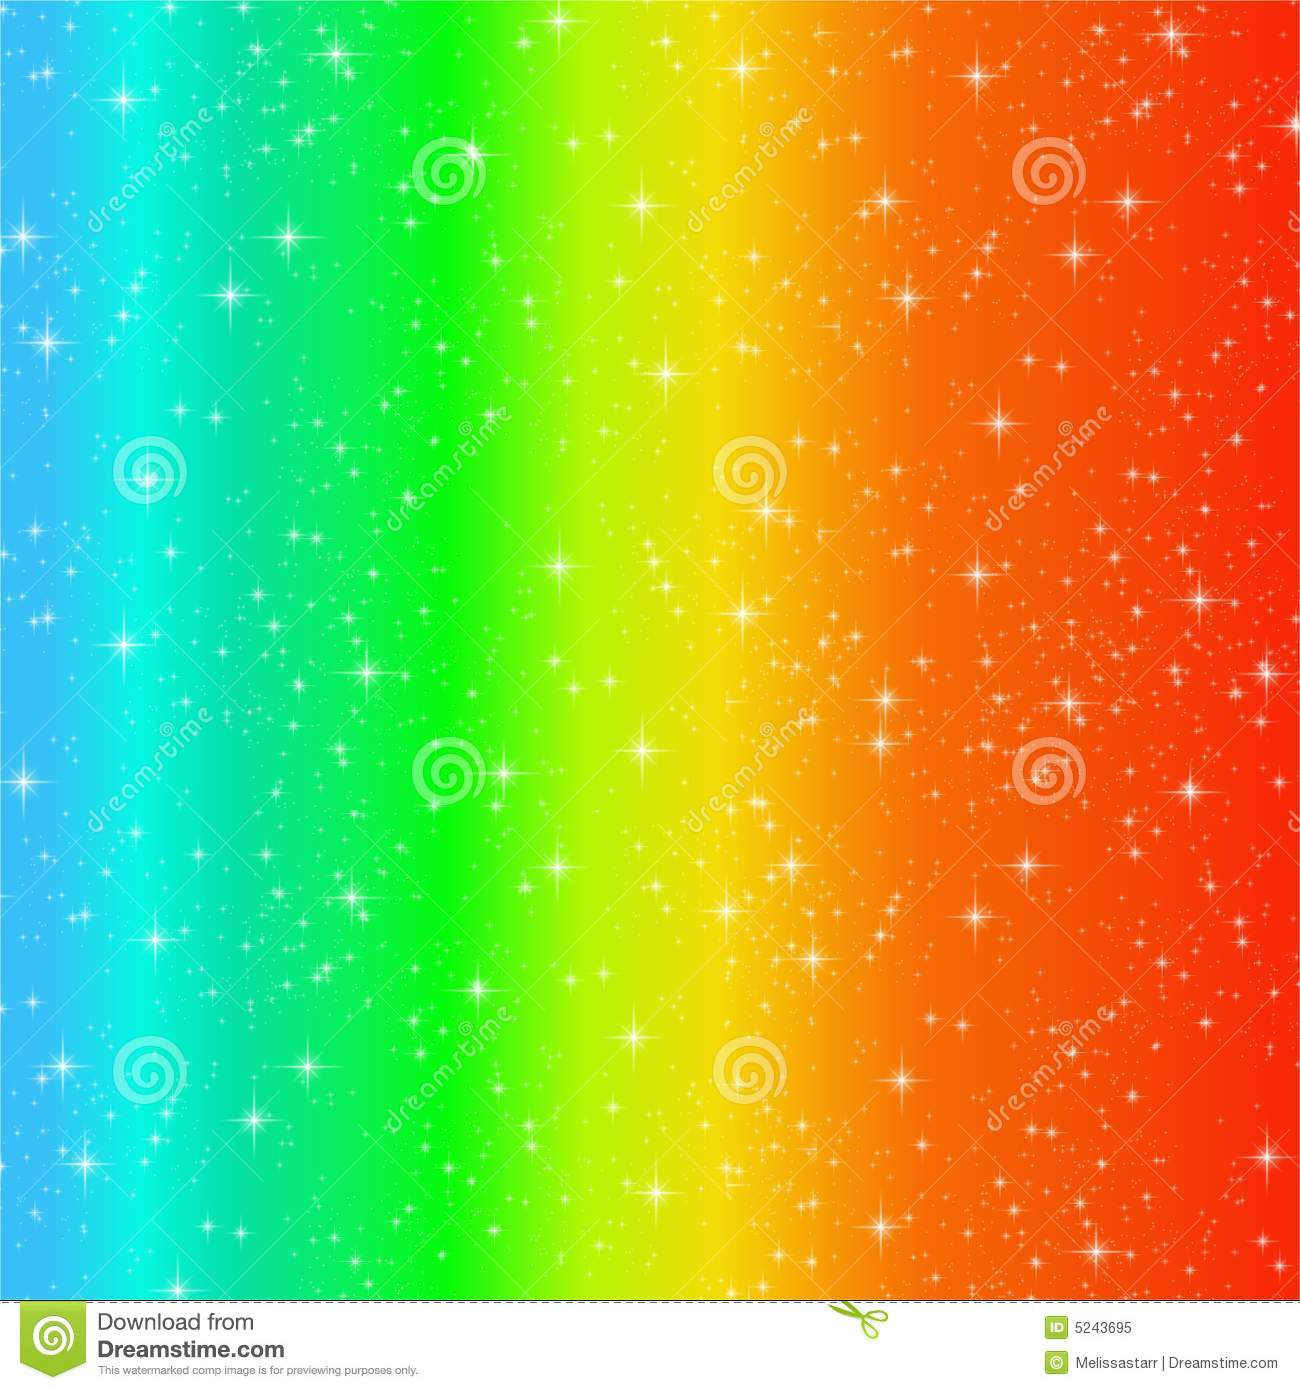 Rainbow Swirl Sparkles Royalty Free Stock Photo - Image: 5243695